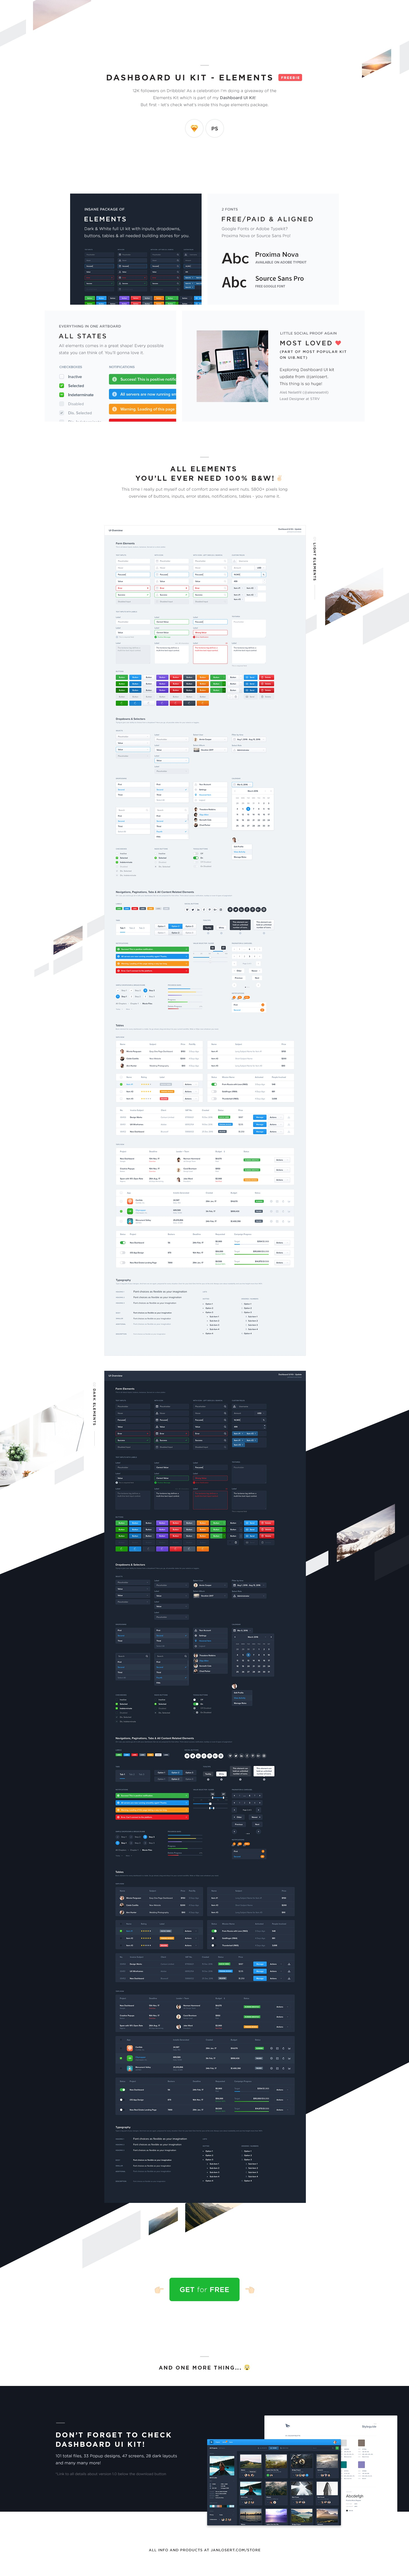 Dashboard ui kit   elements  freebie    full preview